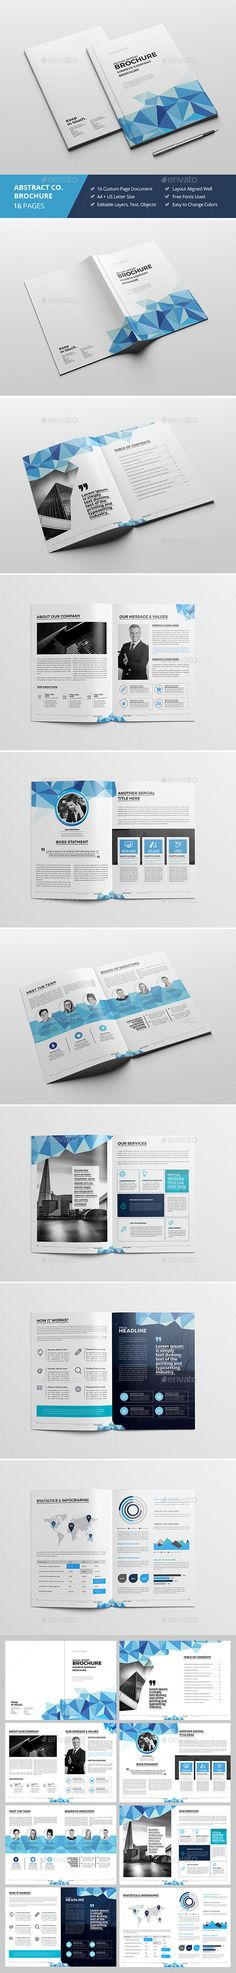 Haweya Abstract Annual Report Template InDesign INDD. Download here: https://graphicriver.net/item/haweya-abstract-annual-report/17621951?ref=ksioks